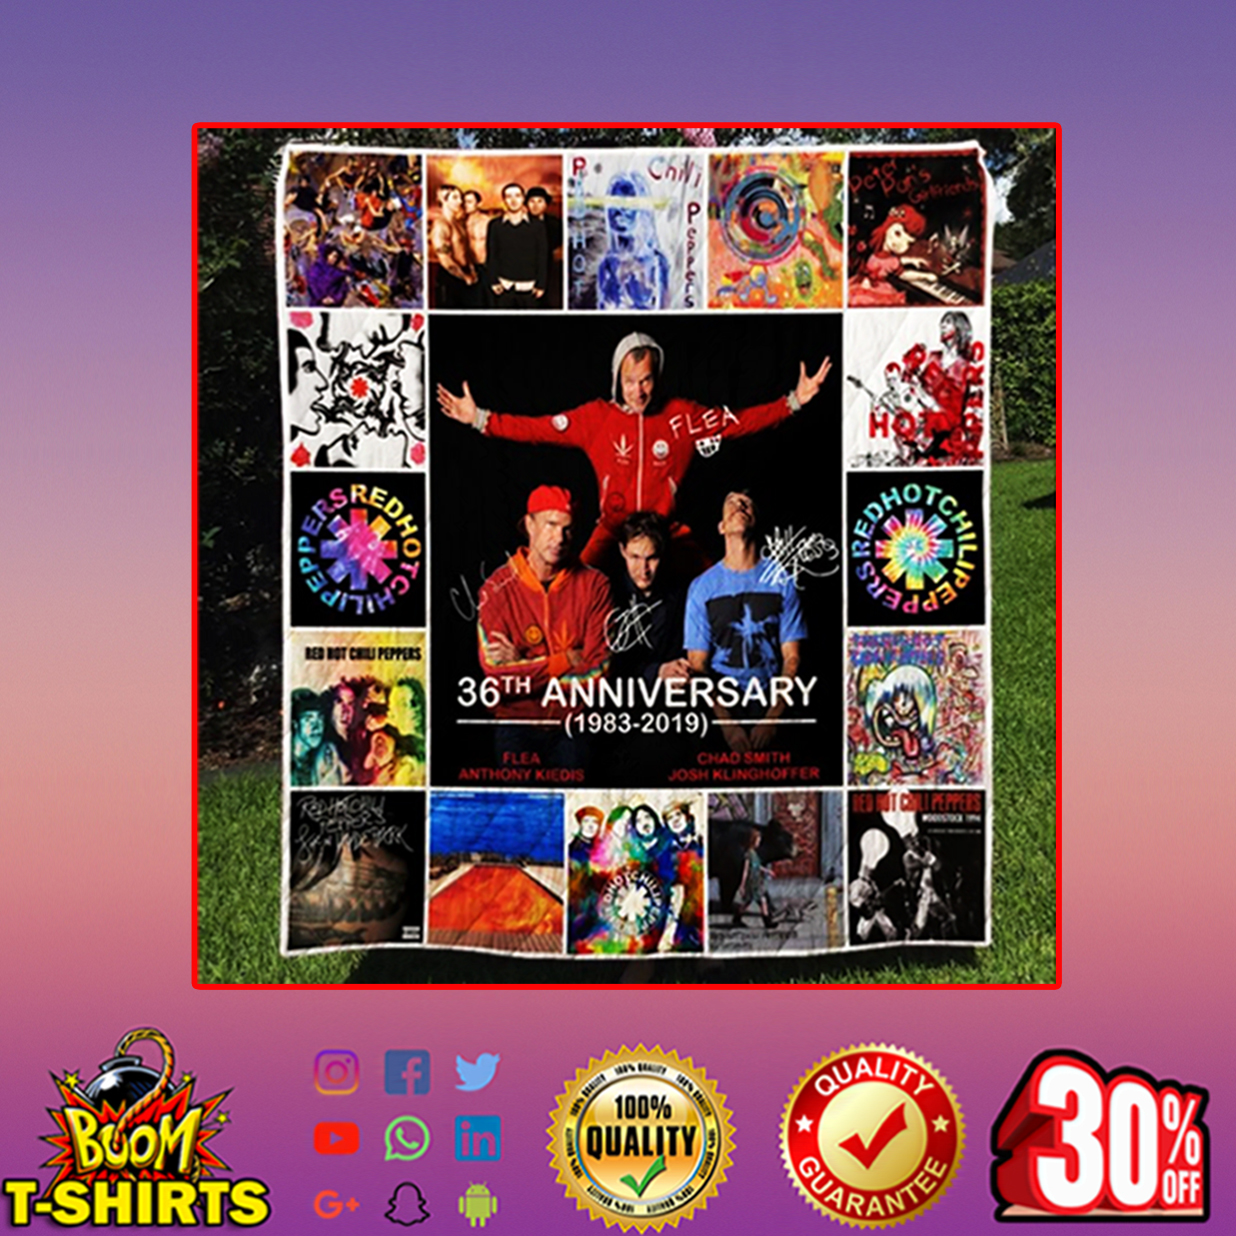 Red Hot Chili Peppers 36th anniversary quilt blanket - twin (60x70 inches)